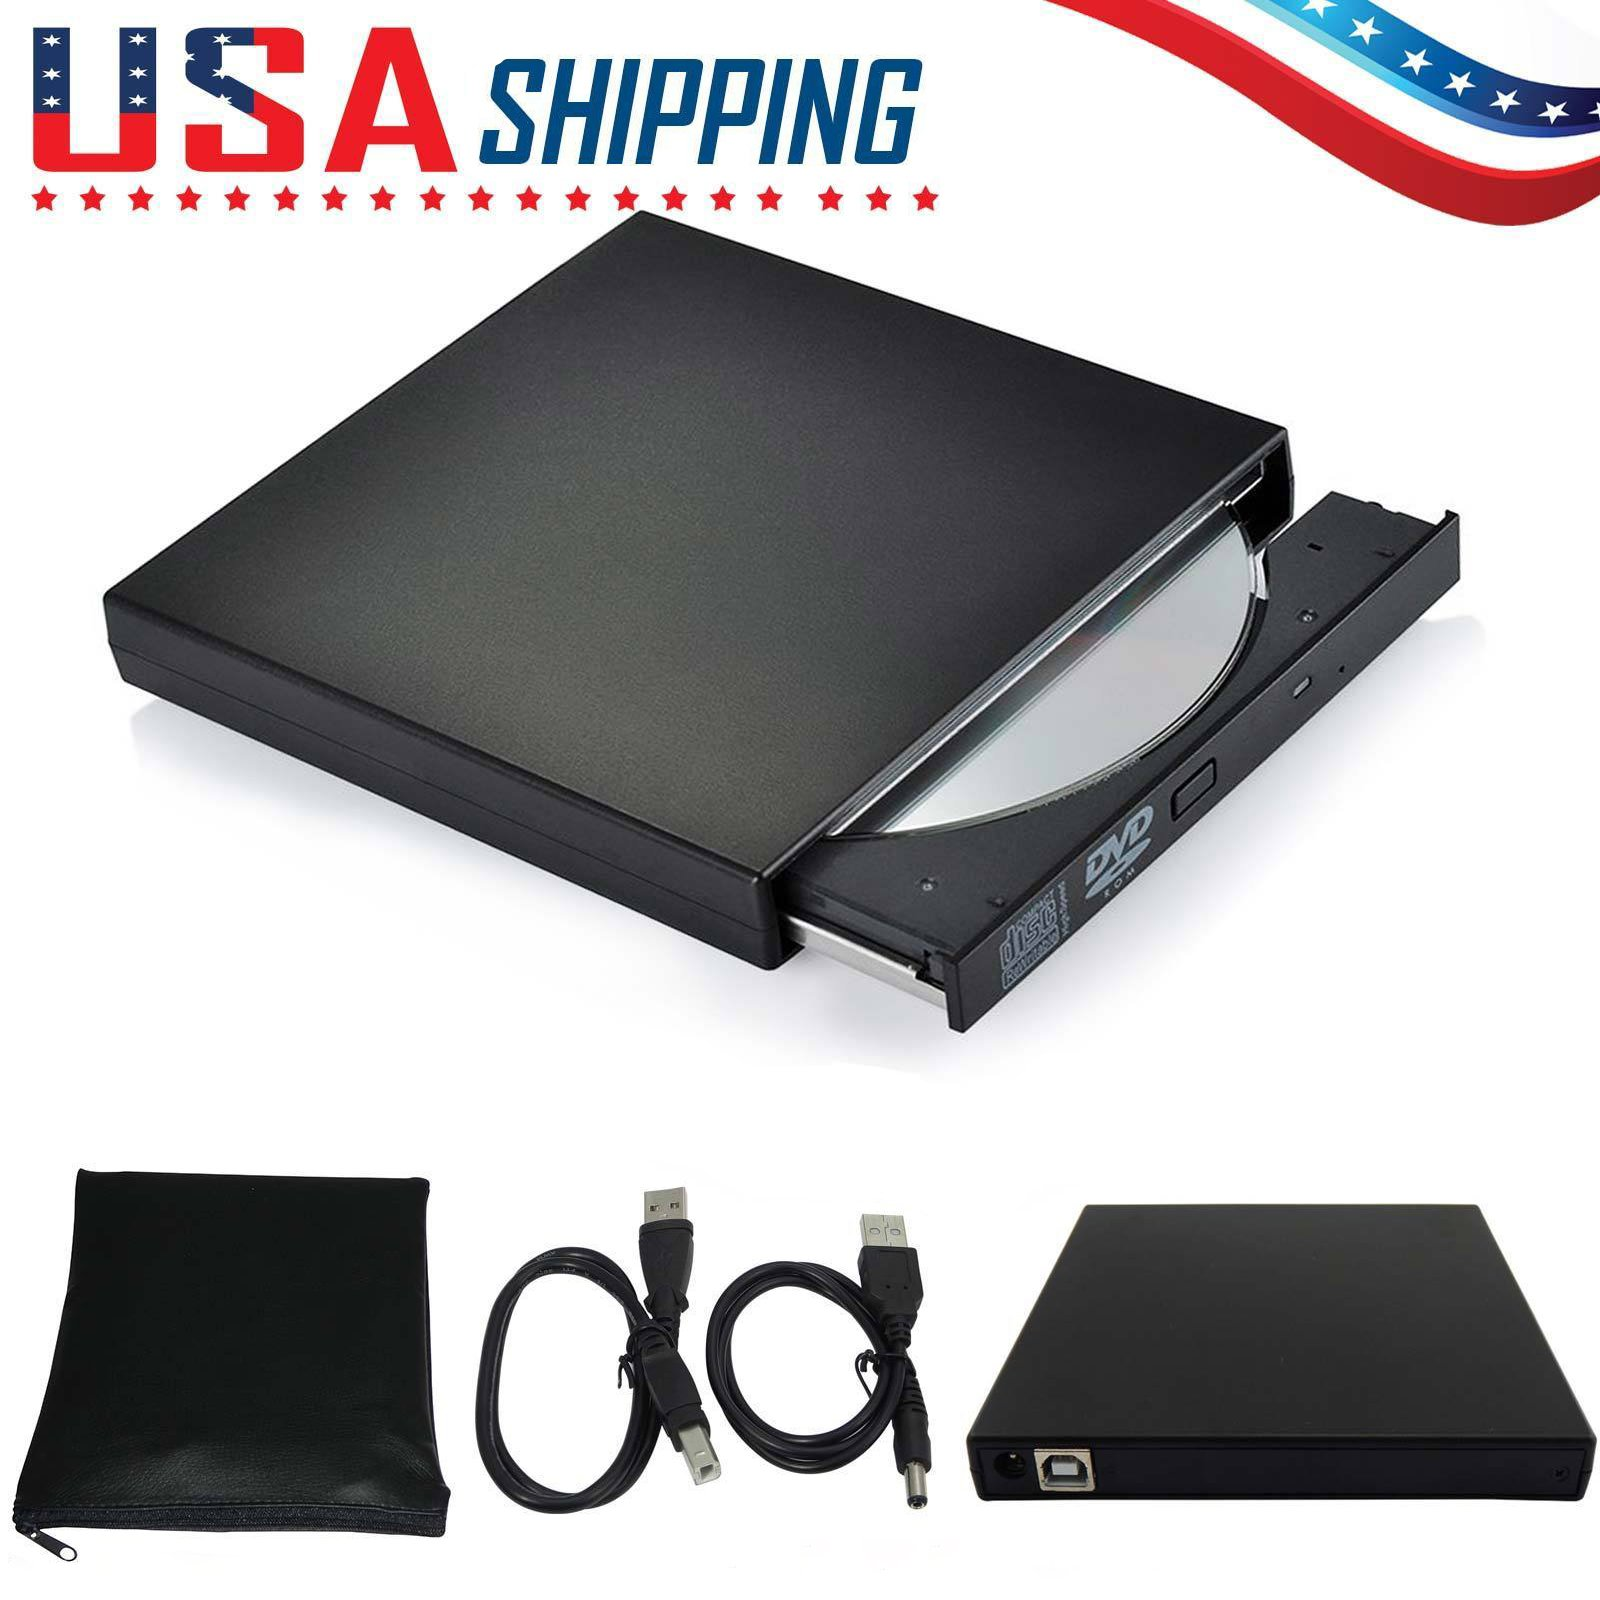 USB 2.0 DVD RW Drive ixaer External CD DVD Drive USB 2.0 Super Multi Ultra Slim Portable DVD Writer Drive Combo CD-RW CD±RW Burner Drive with M-DISC Support (Black)